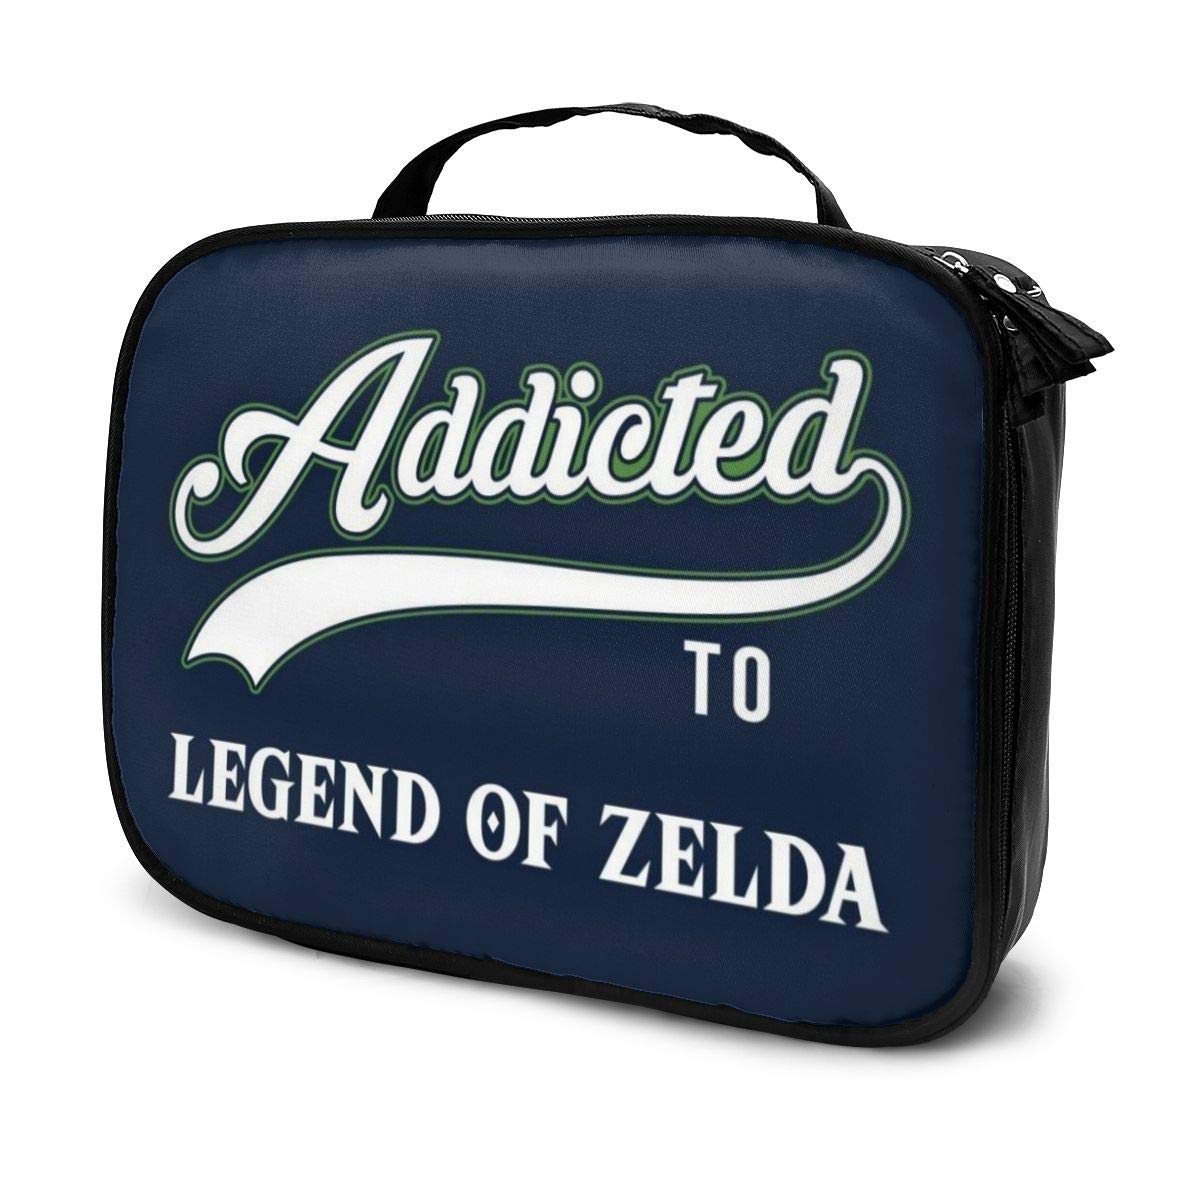 Multi-Functional Bag With Compartments Addicted To Legend Of Zelda Professional Cosmetic Pouch Travel Kit Makeup Boxes Makeup Bag